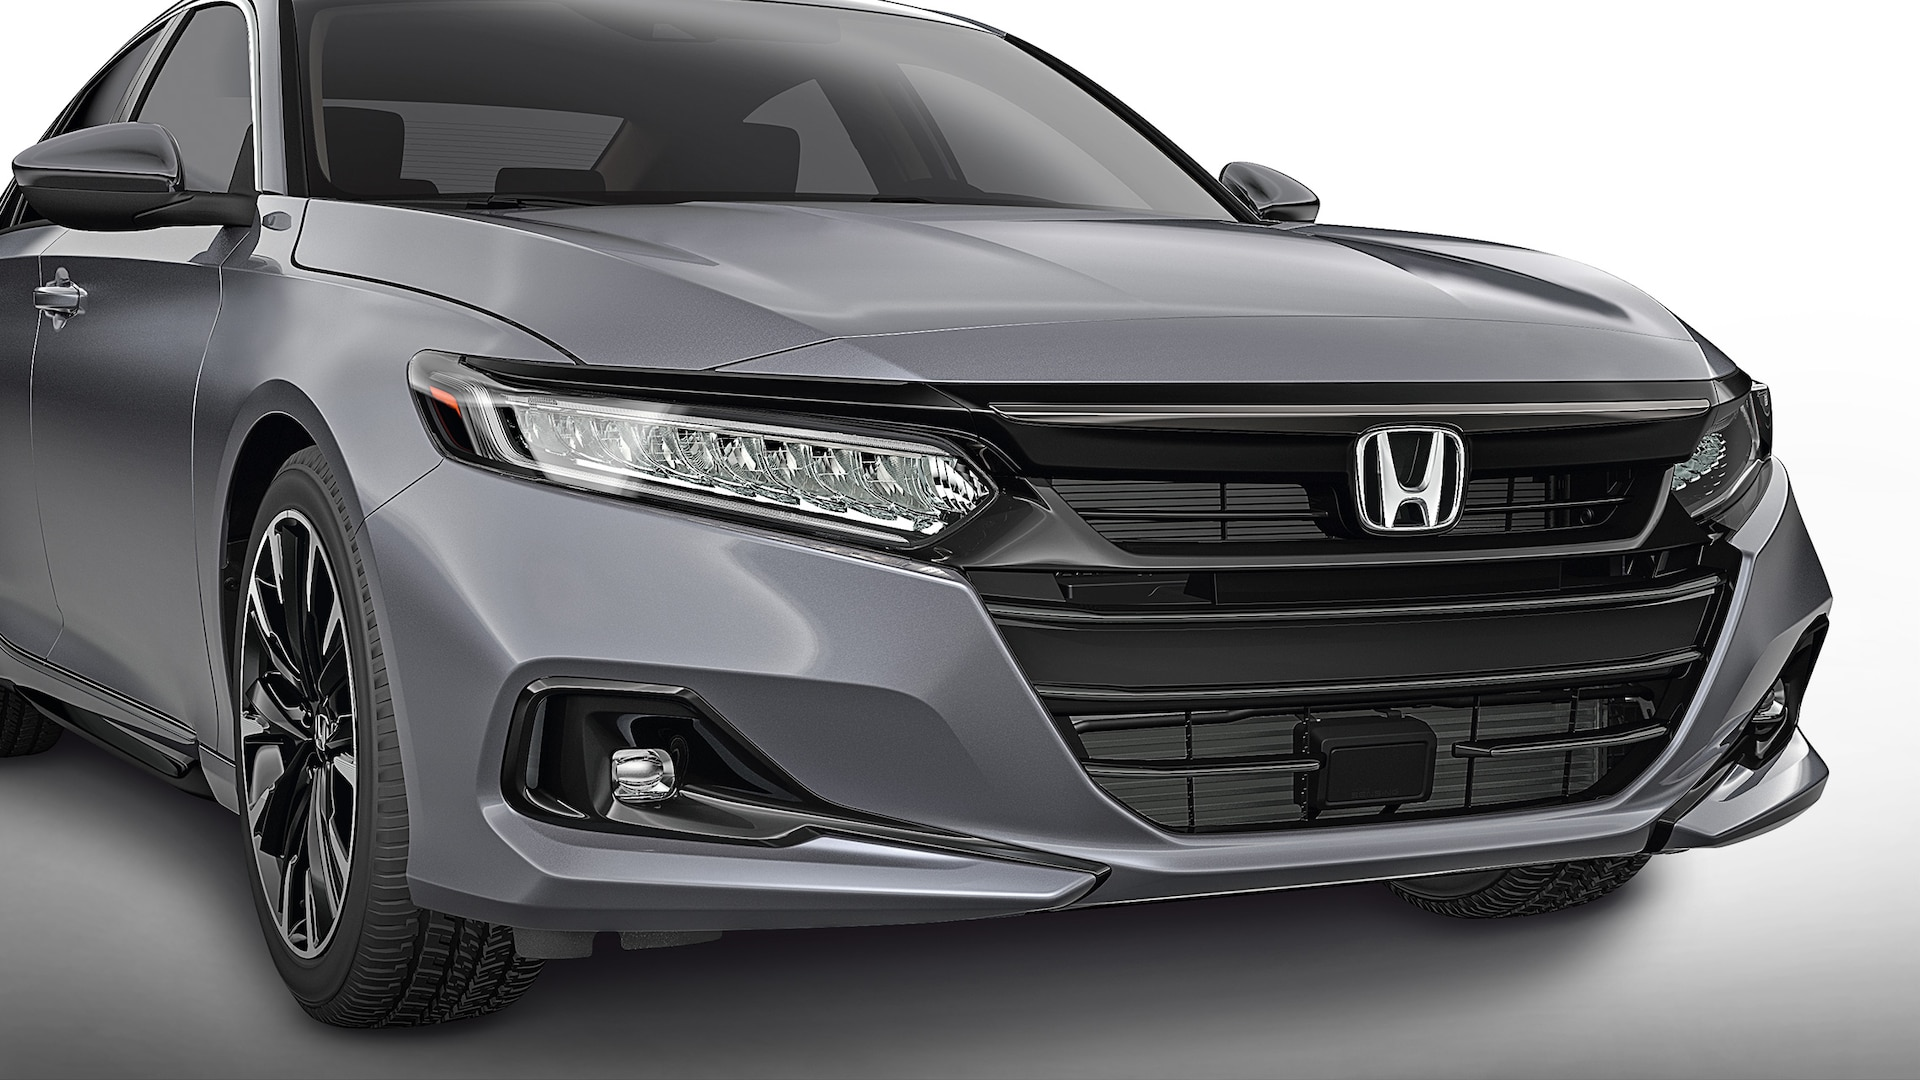 Sport grille accessory detail on the 2021 Honda Accord in Modern Steel Metallic.